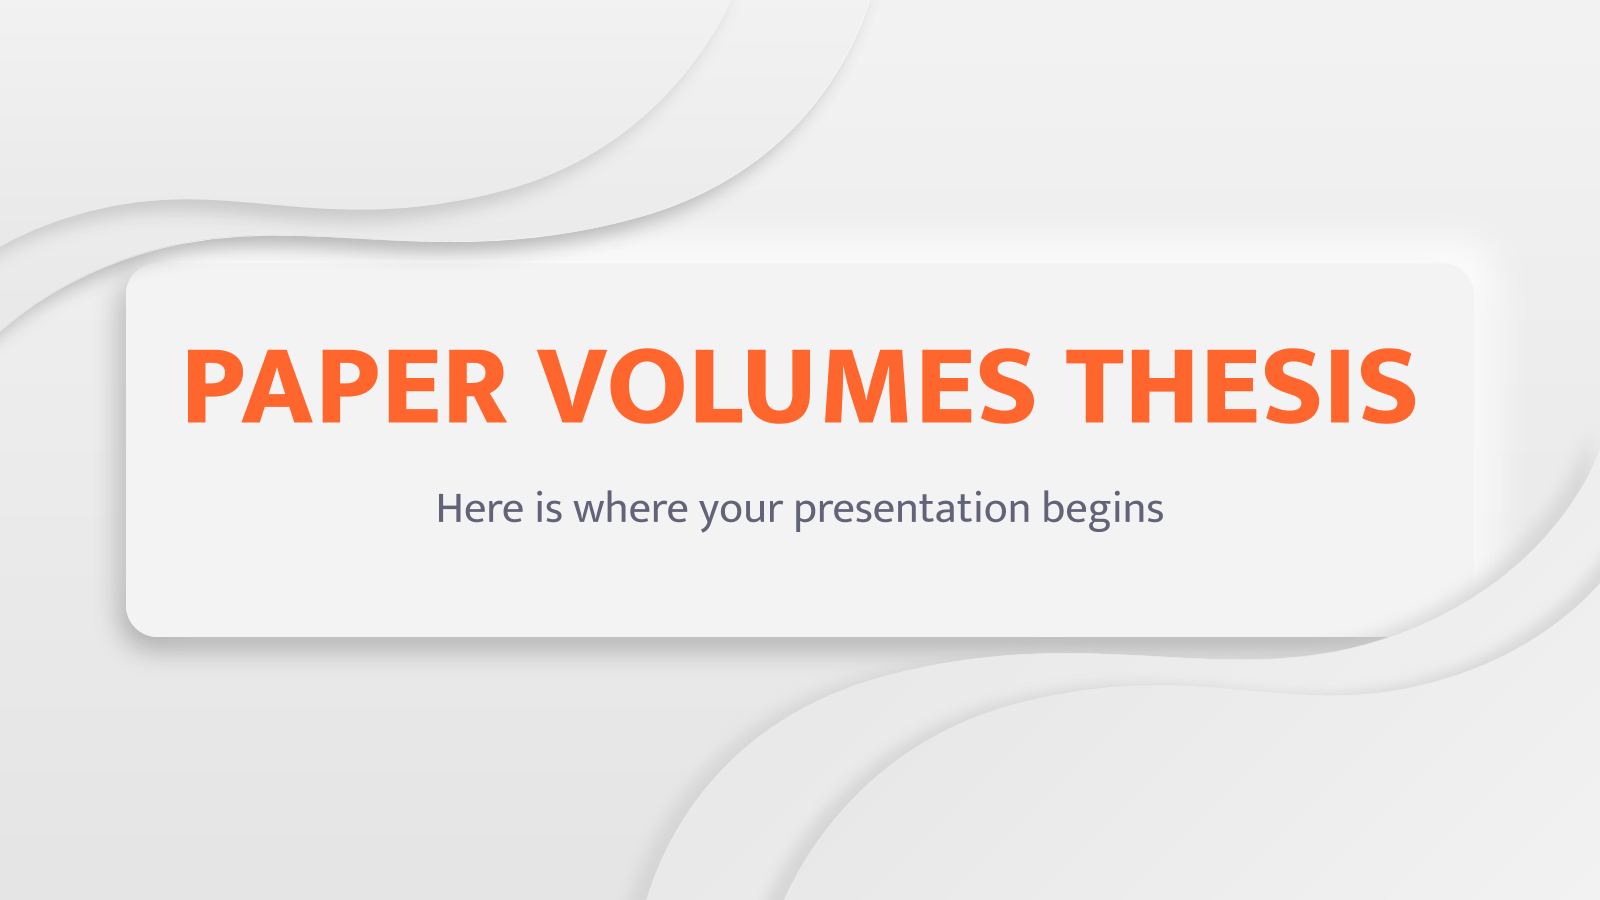 Paper Volumes Thesis presentation template